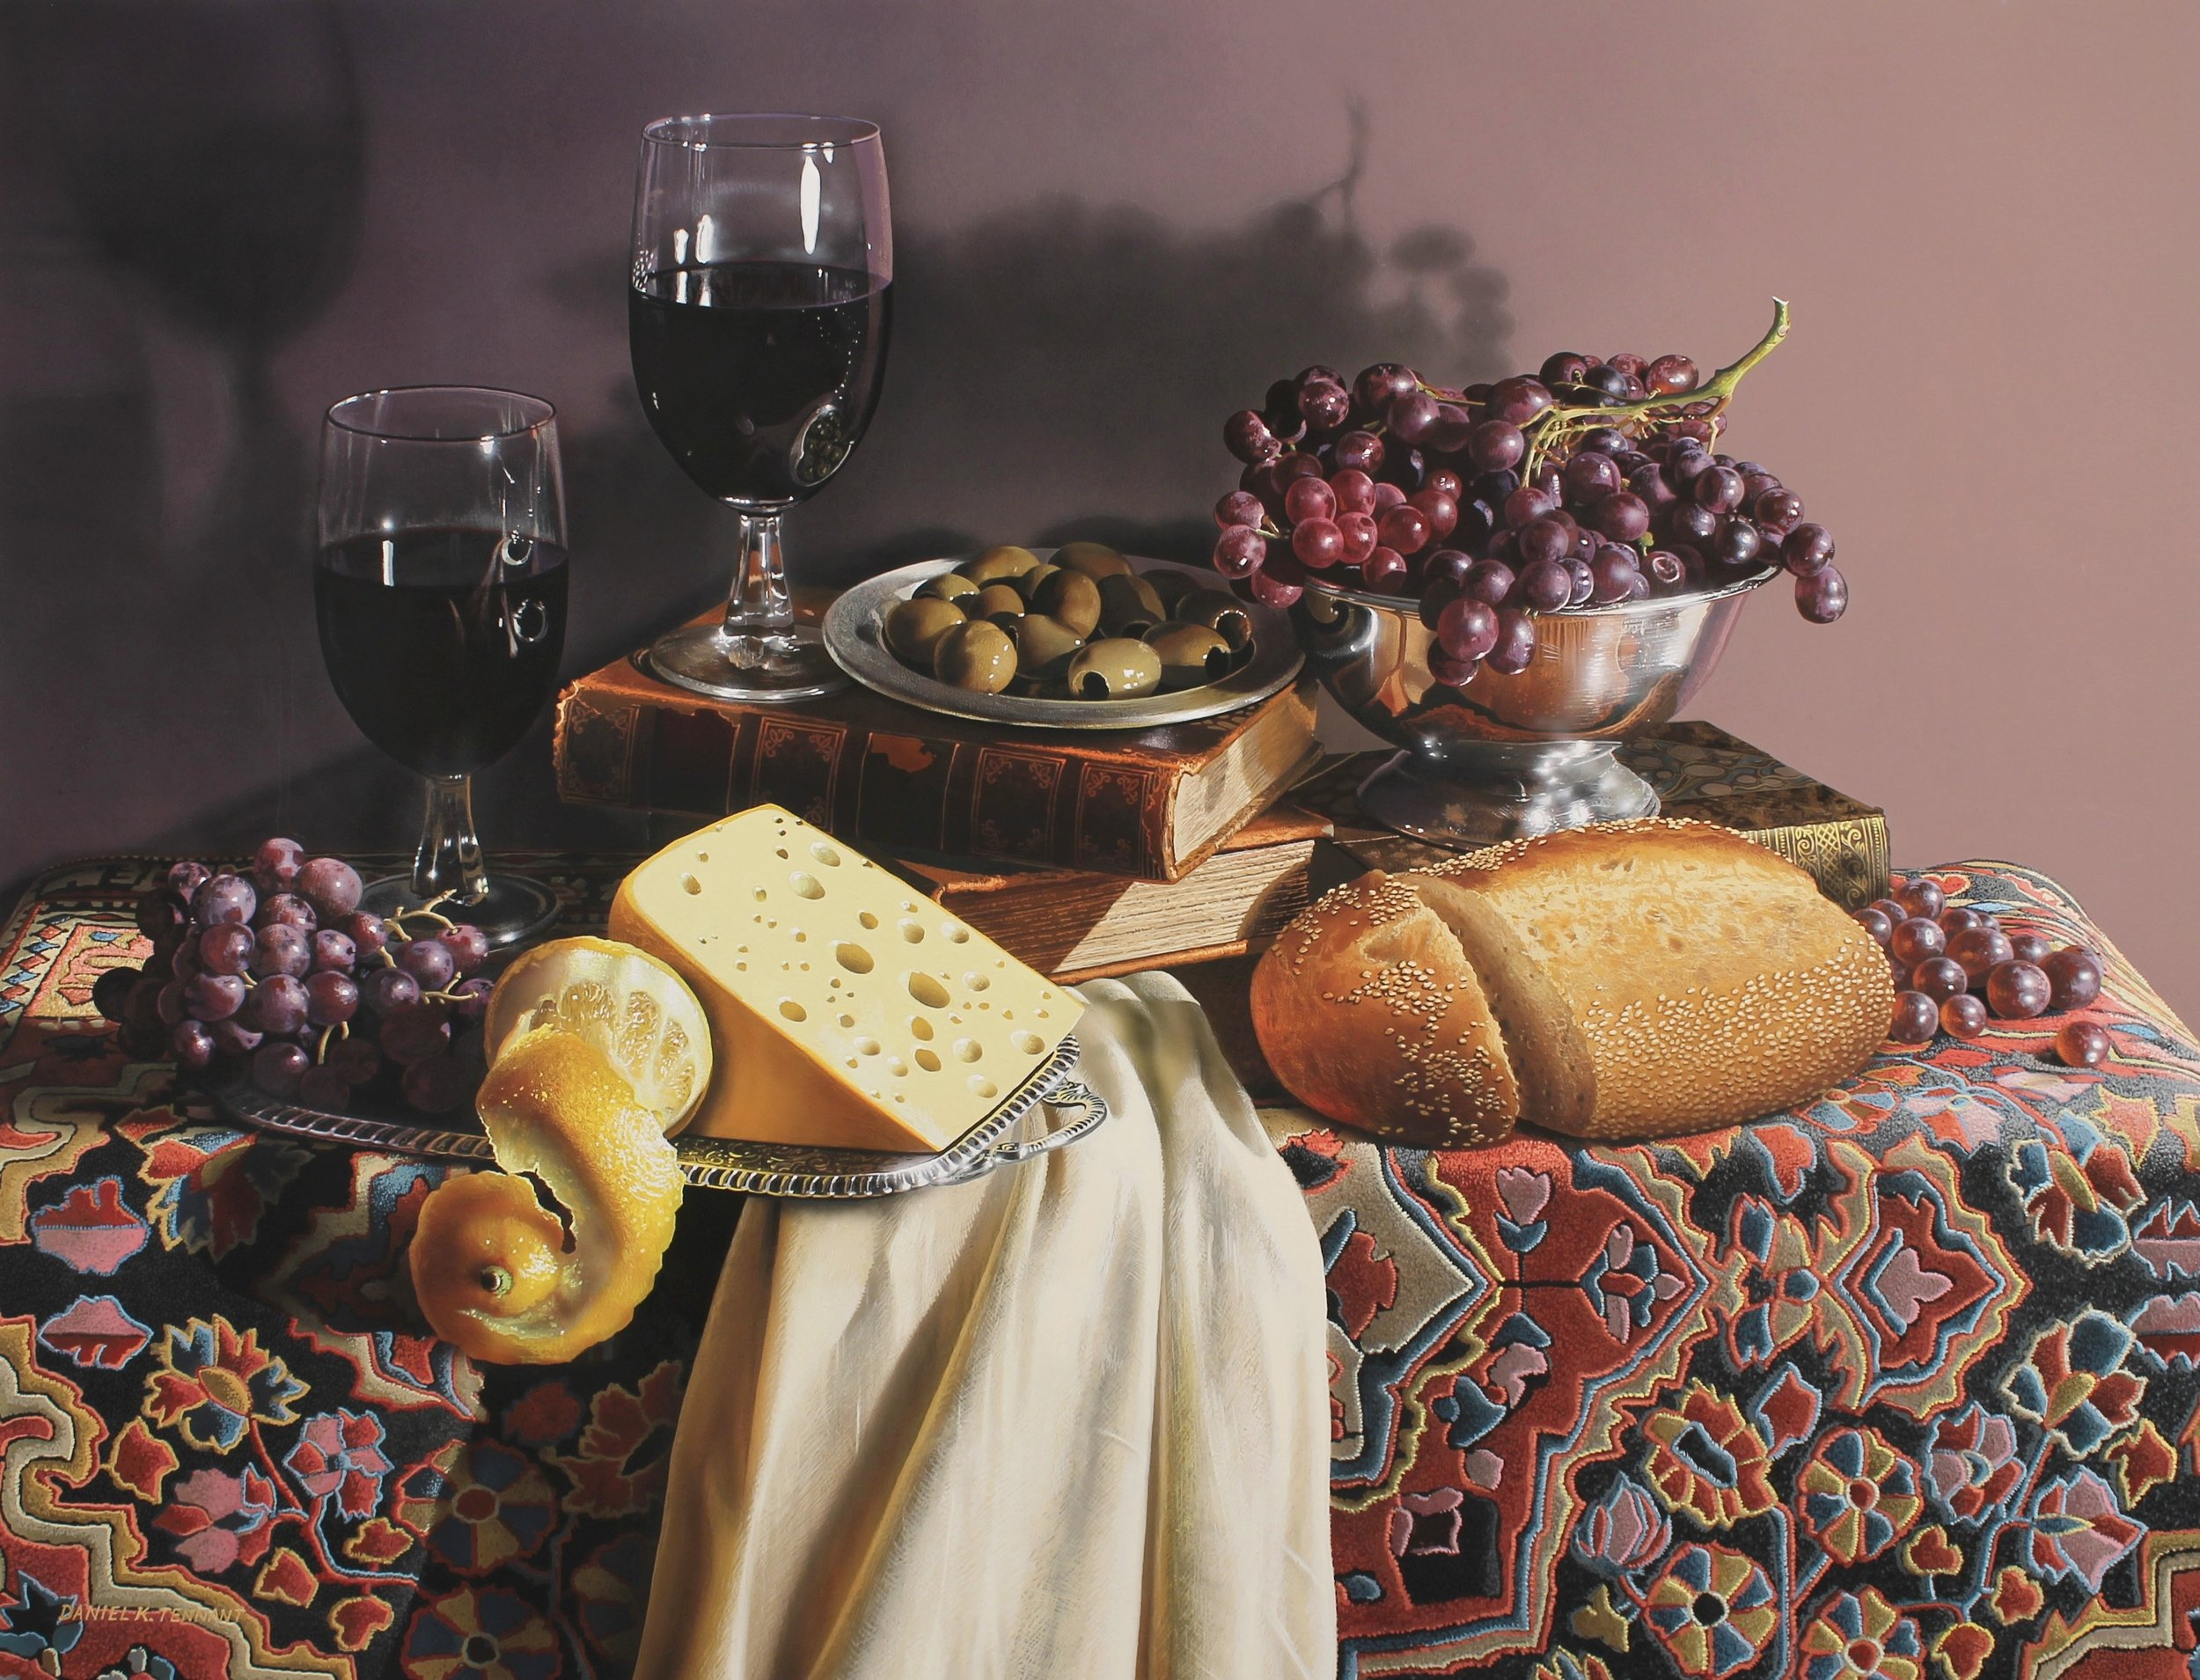 A Dutch Tribute Or Still Life With Grapes and Olives